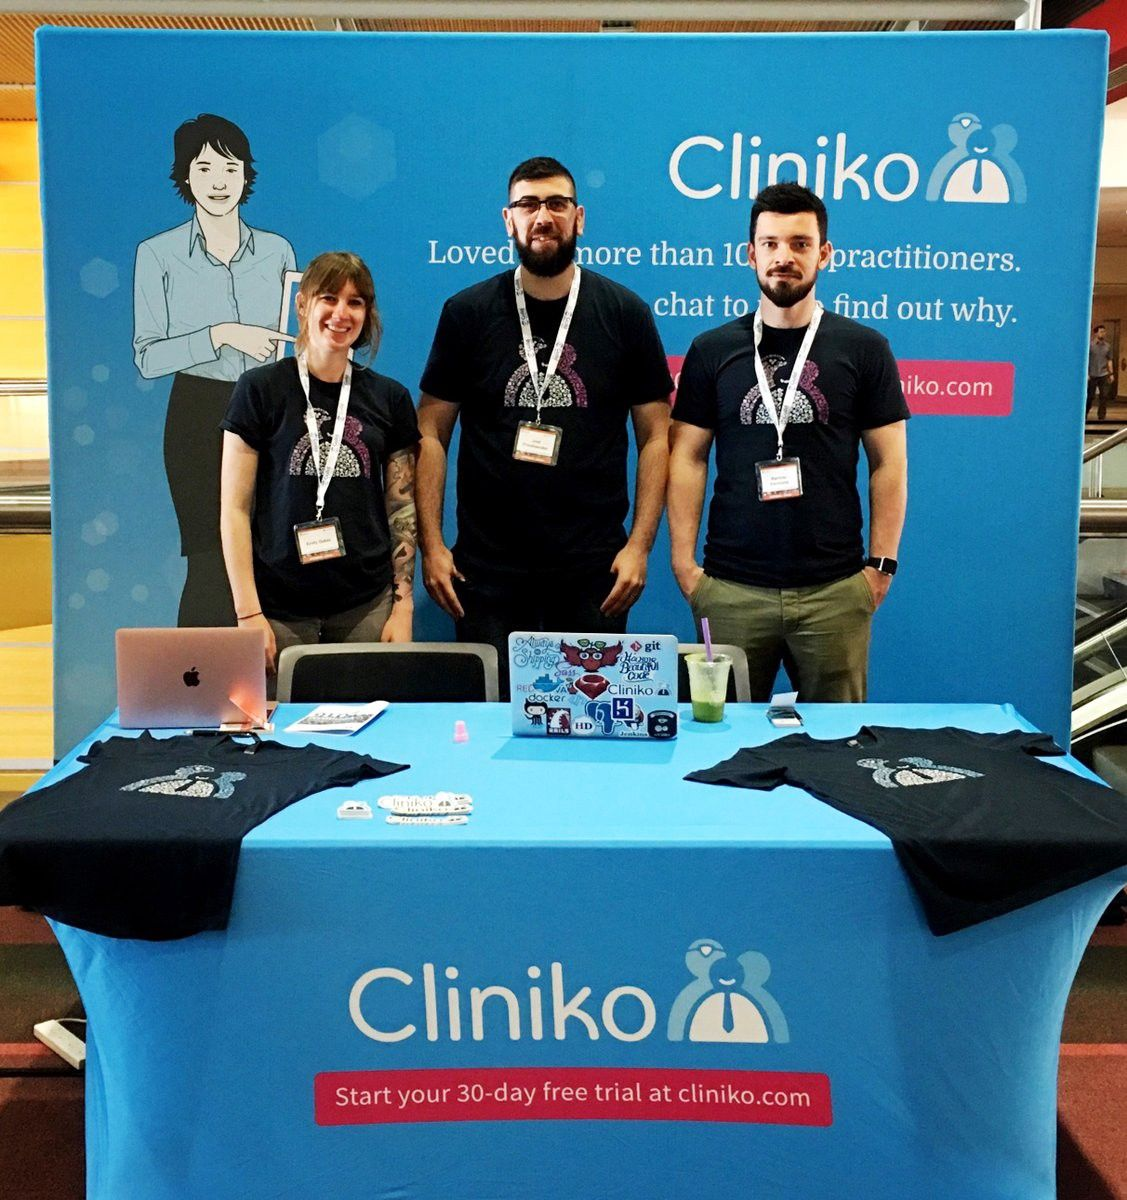 Part of the Cliniko team at a conference booth